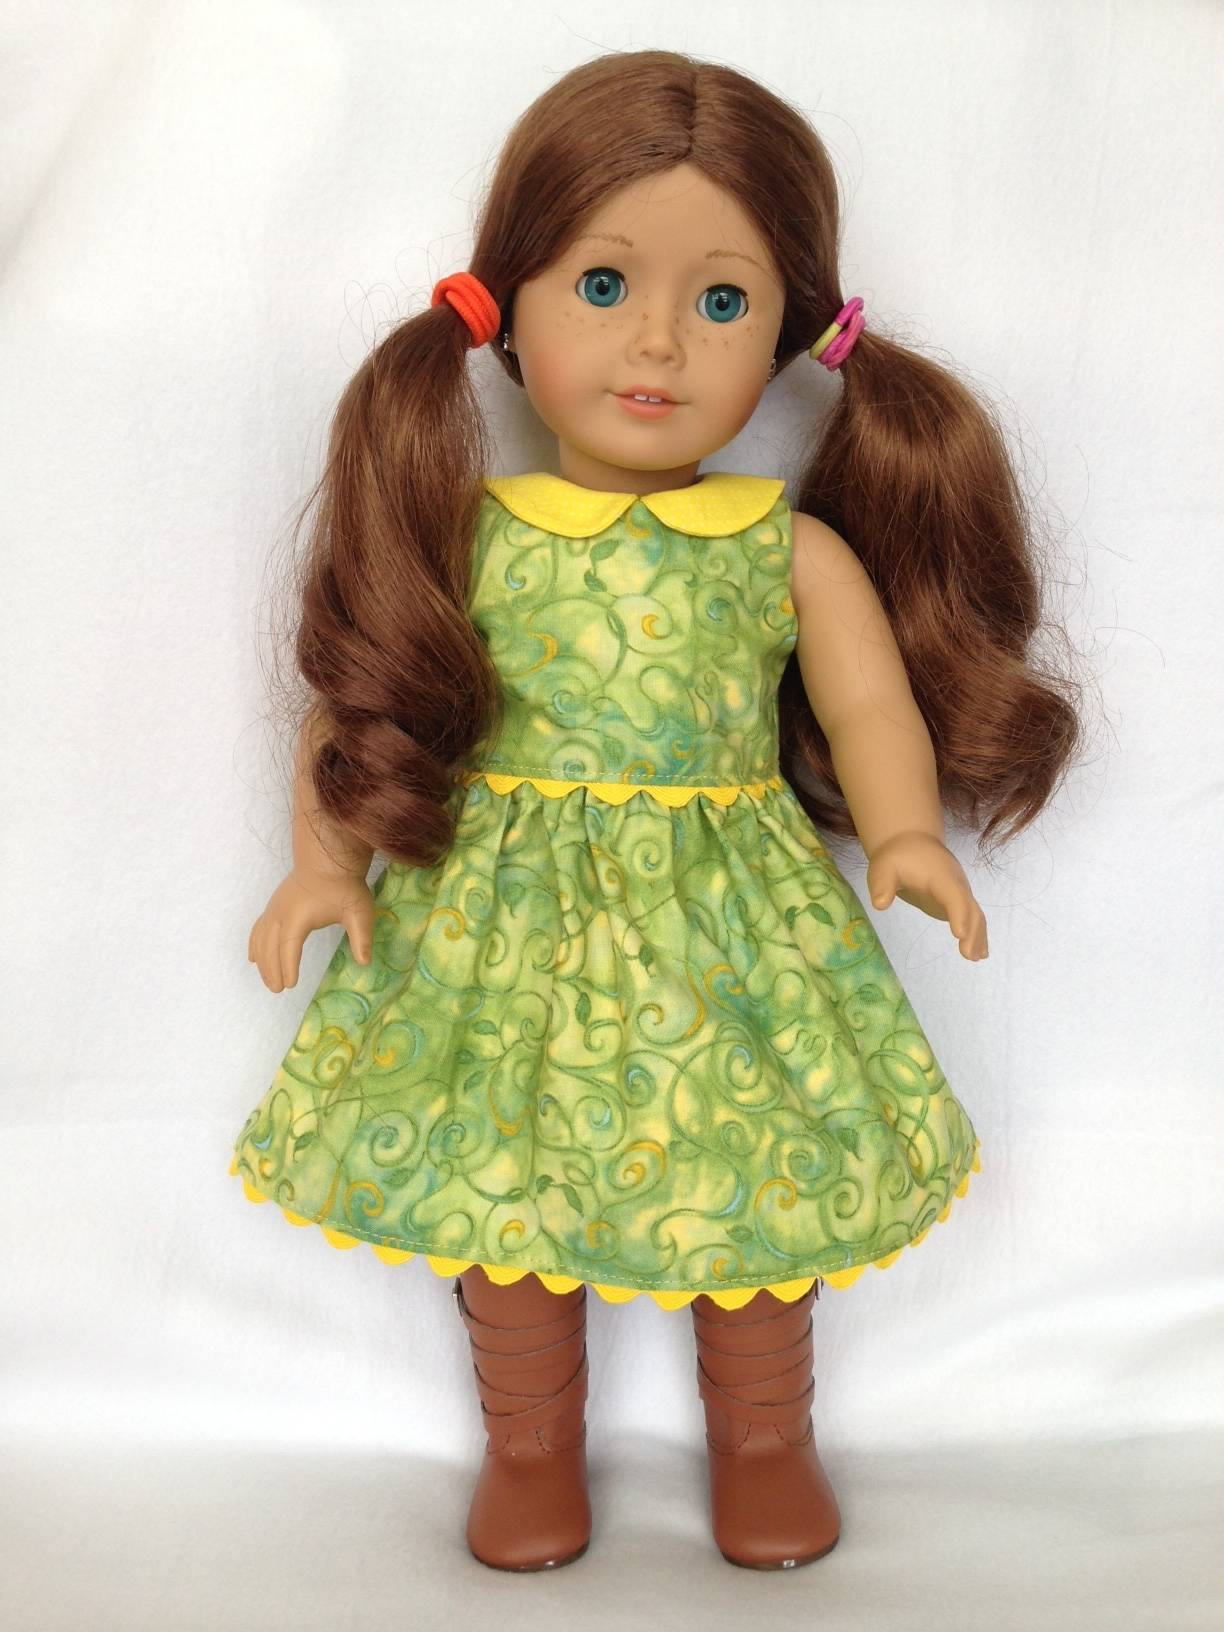 Green and yellow doll dress